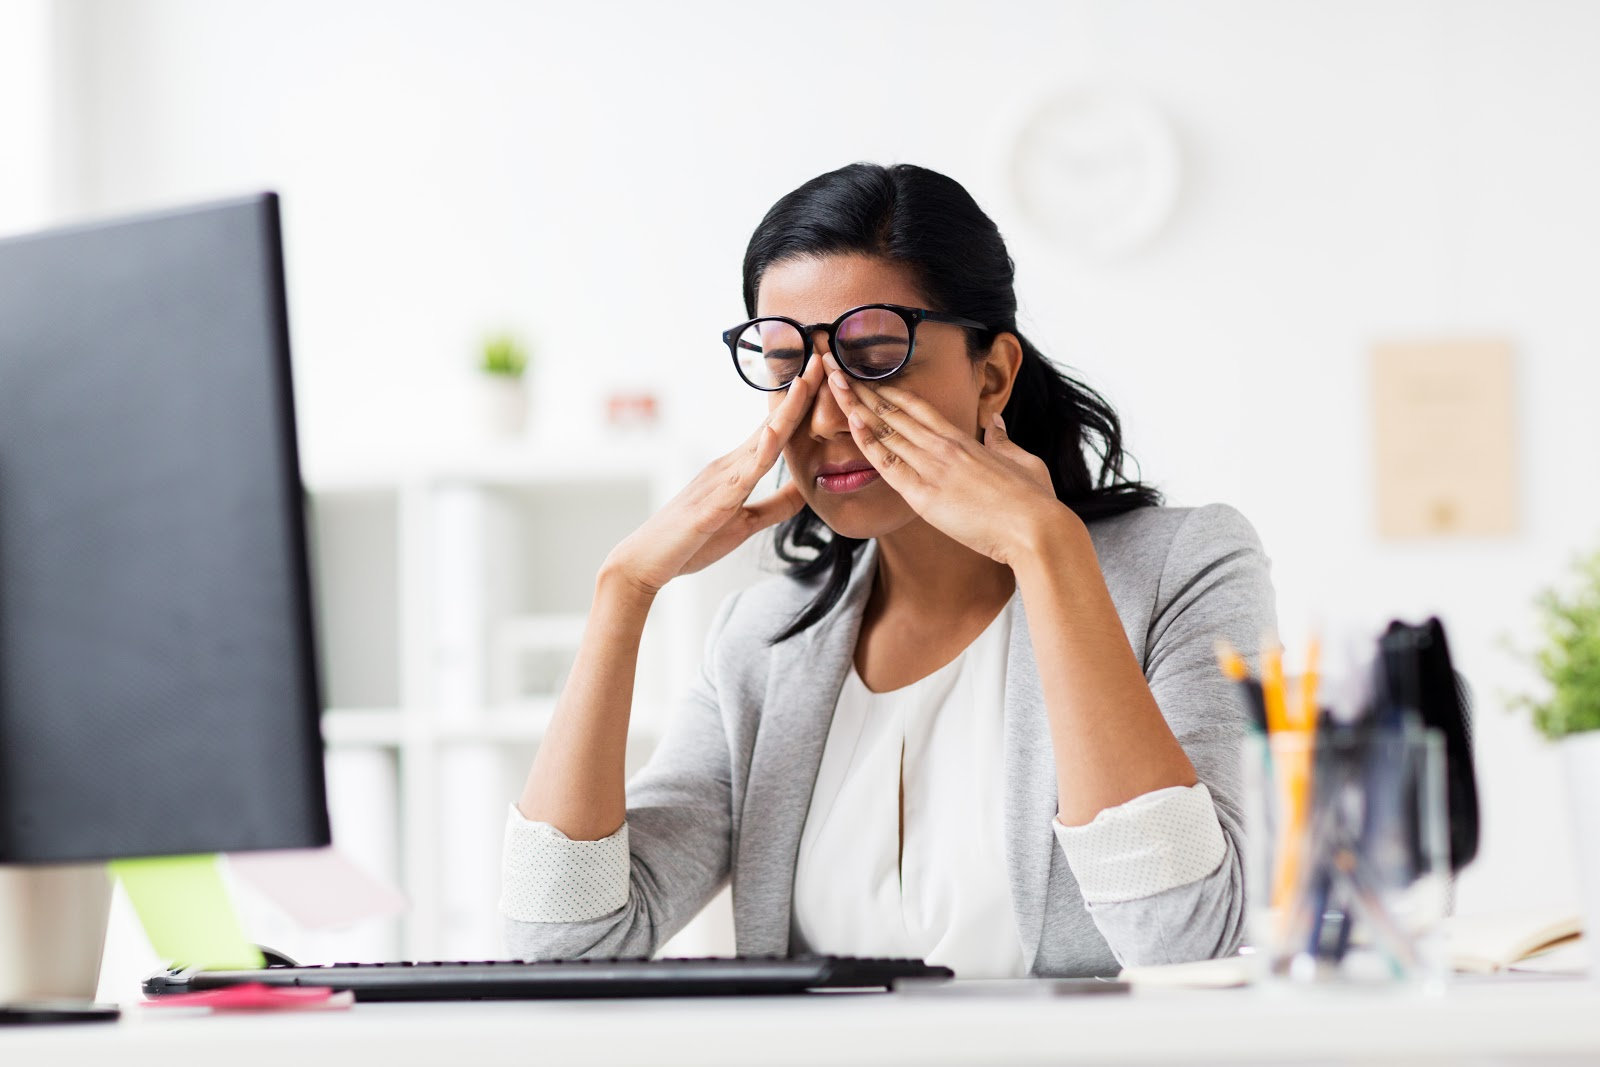 What Can You Do When Your Job is Seriously Stressing Out